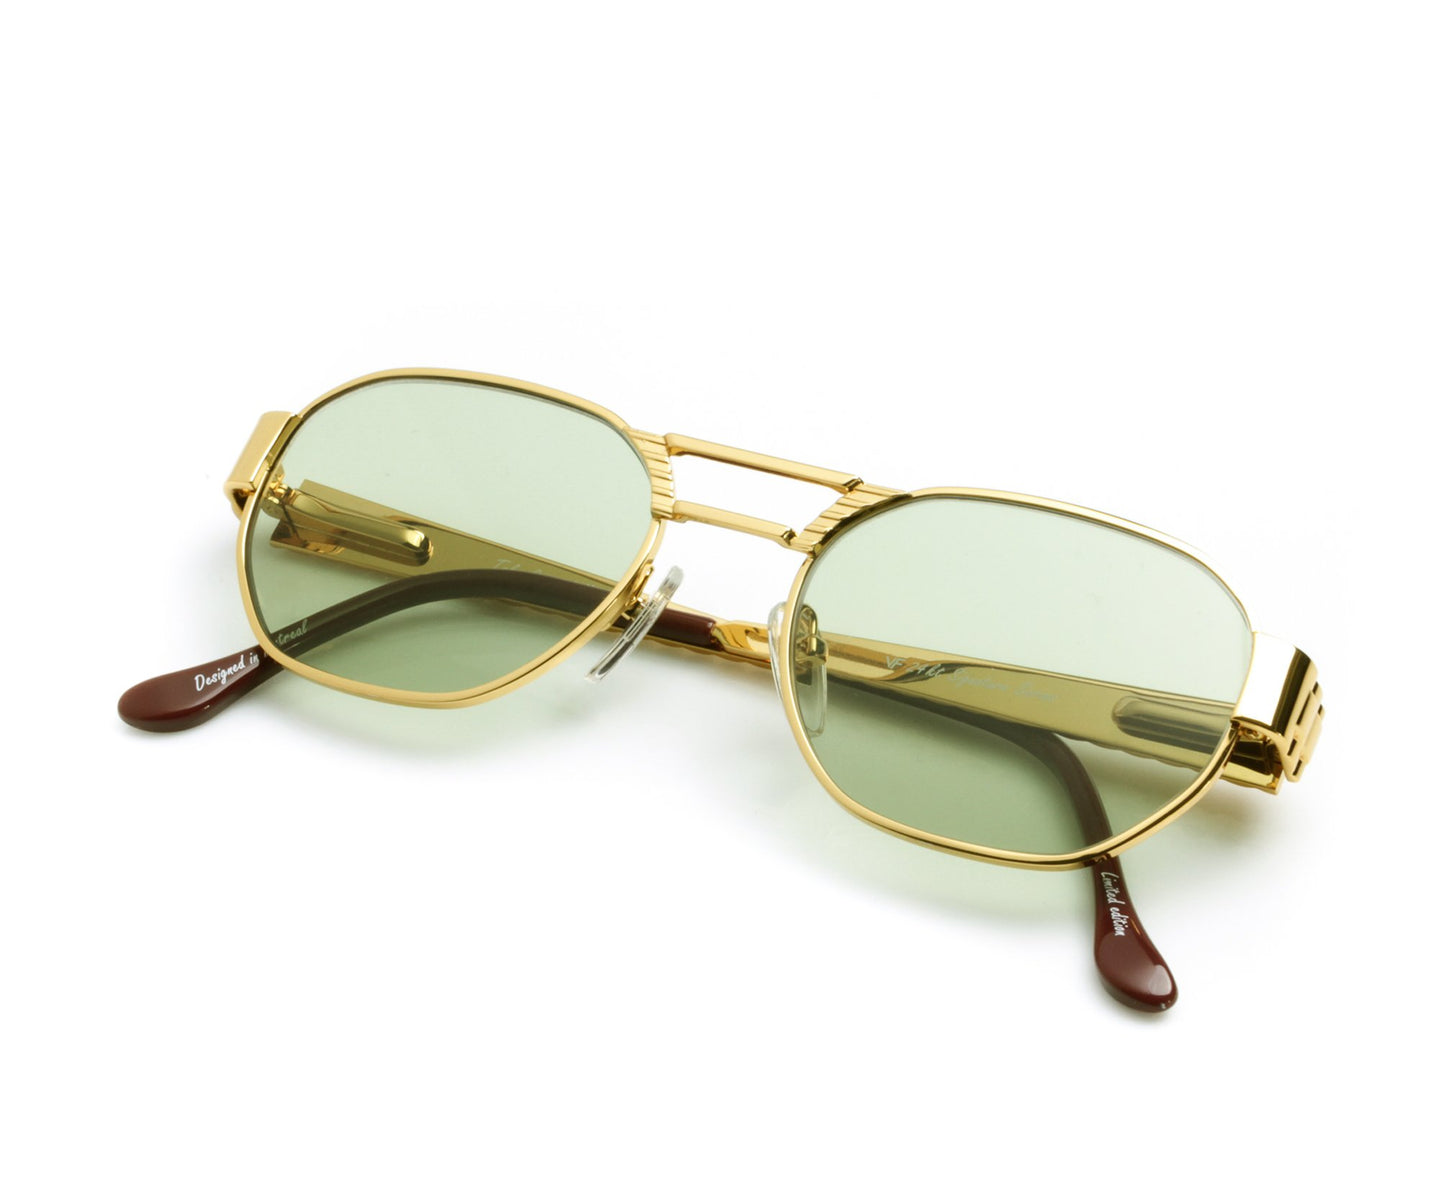 VF Crown Presidential 24KT Gold (Money Green) Thumb, VF Masterpiece , glasses frames, eyeglasses online, eyeglass frames, mens glasses, womens glasses, buy glasses online, designer eyeglasses, vintage sunglasses, retro sunglasses, vintage glasses, sunglass, eyeglass, glasses, lens, vintage frames company, vf